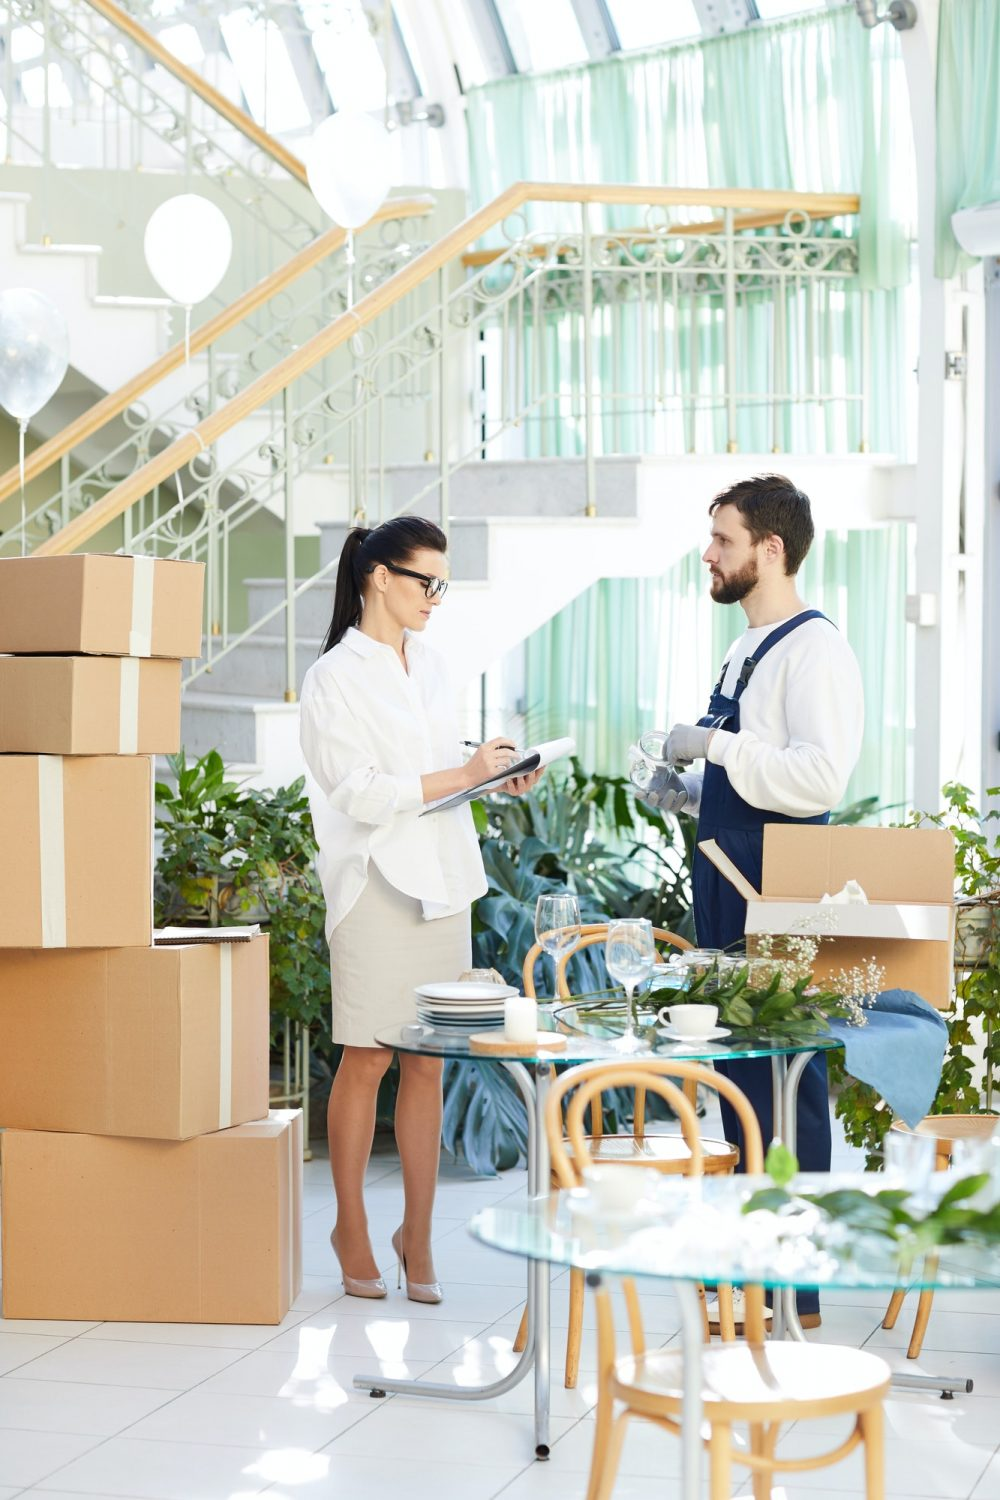 Business lady asking mover about delivery order